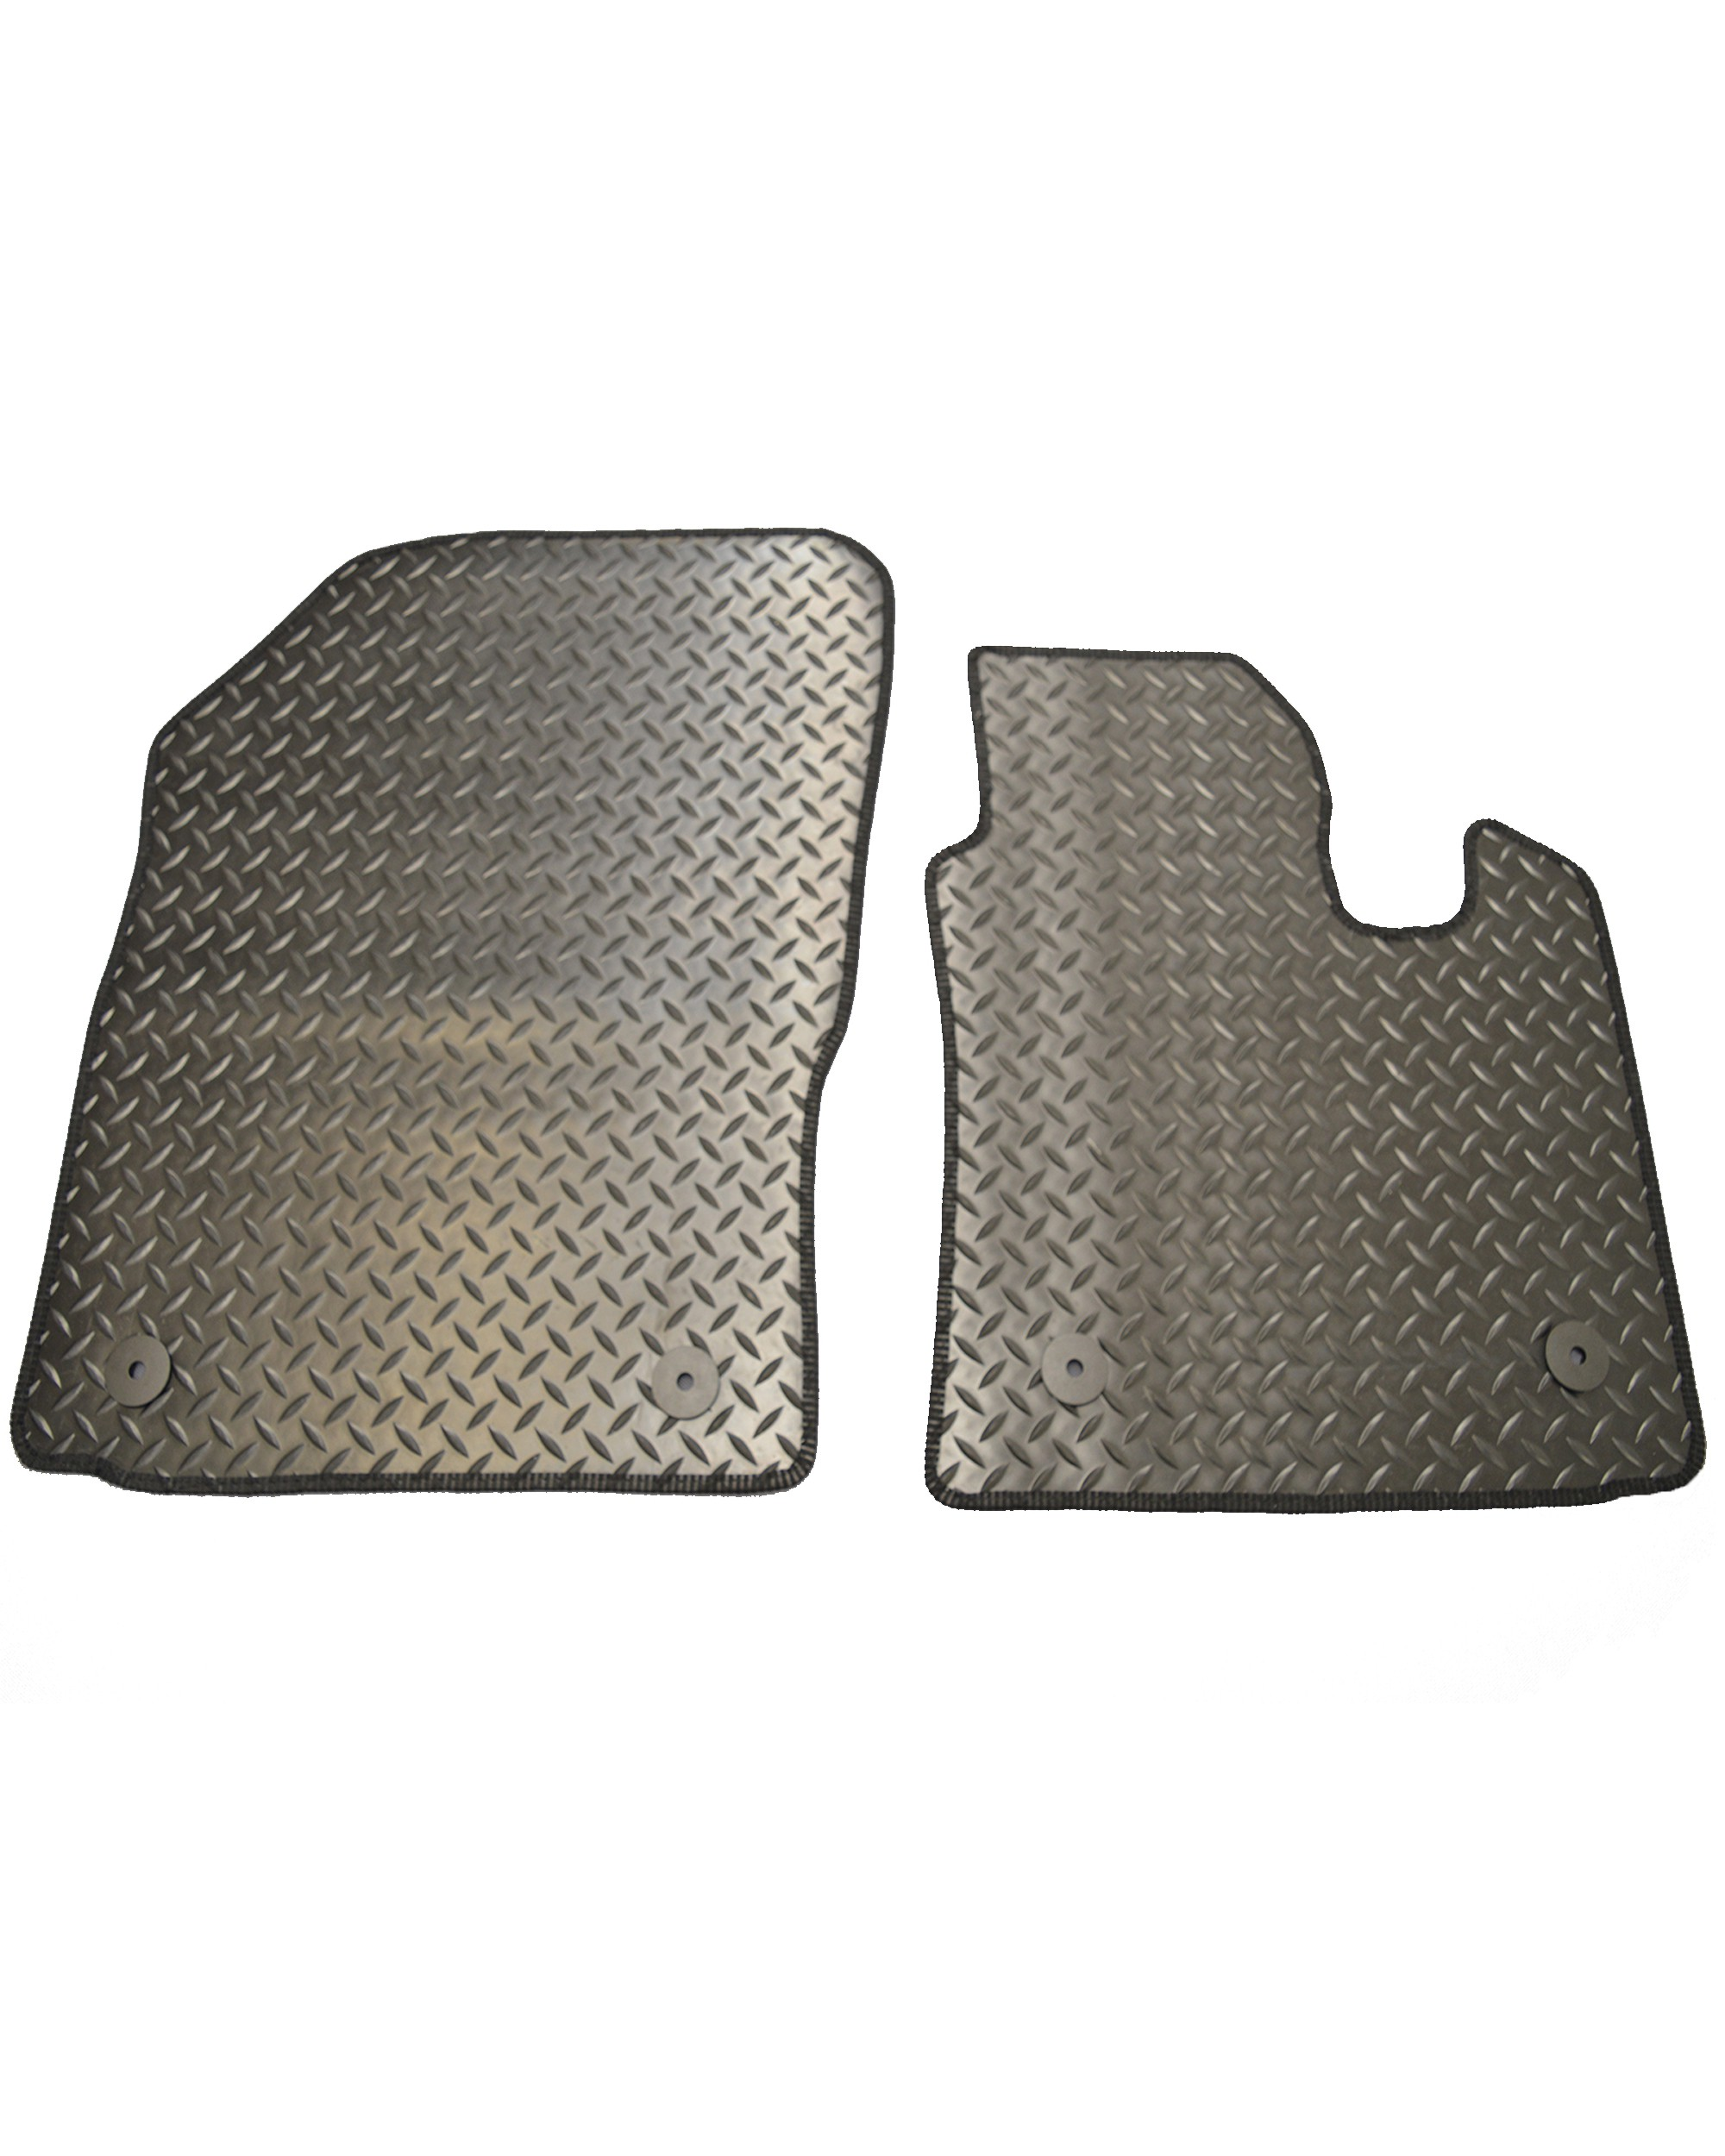 Volkswagen Caddy Checker Plate Rubber Mats